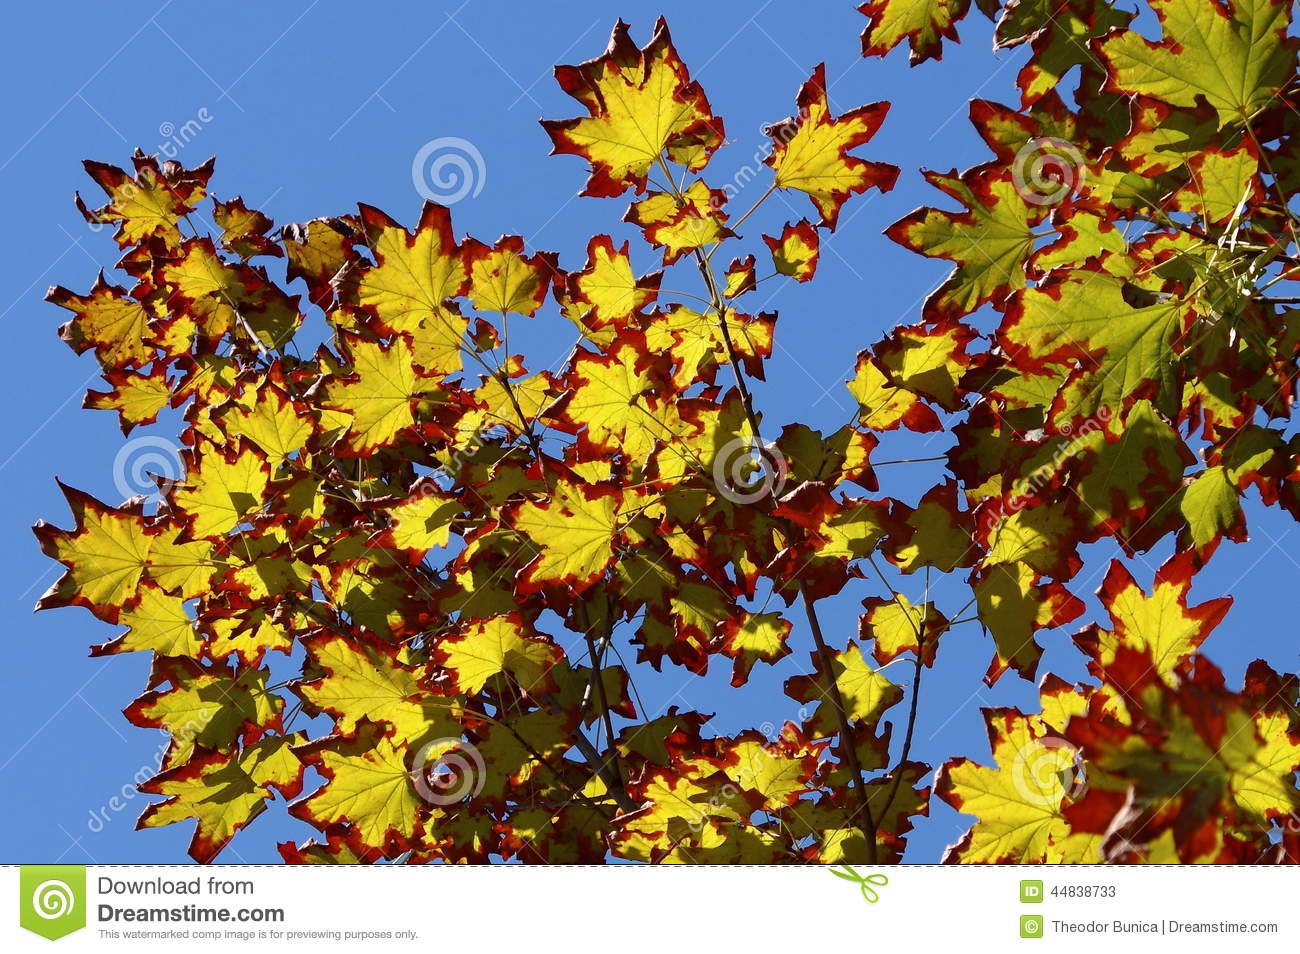 Colors of autumn in a landscape. Colored leaves in sunlight and blue sky in background